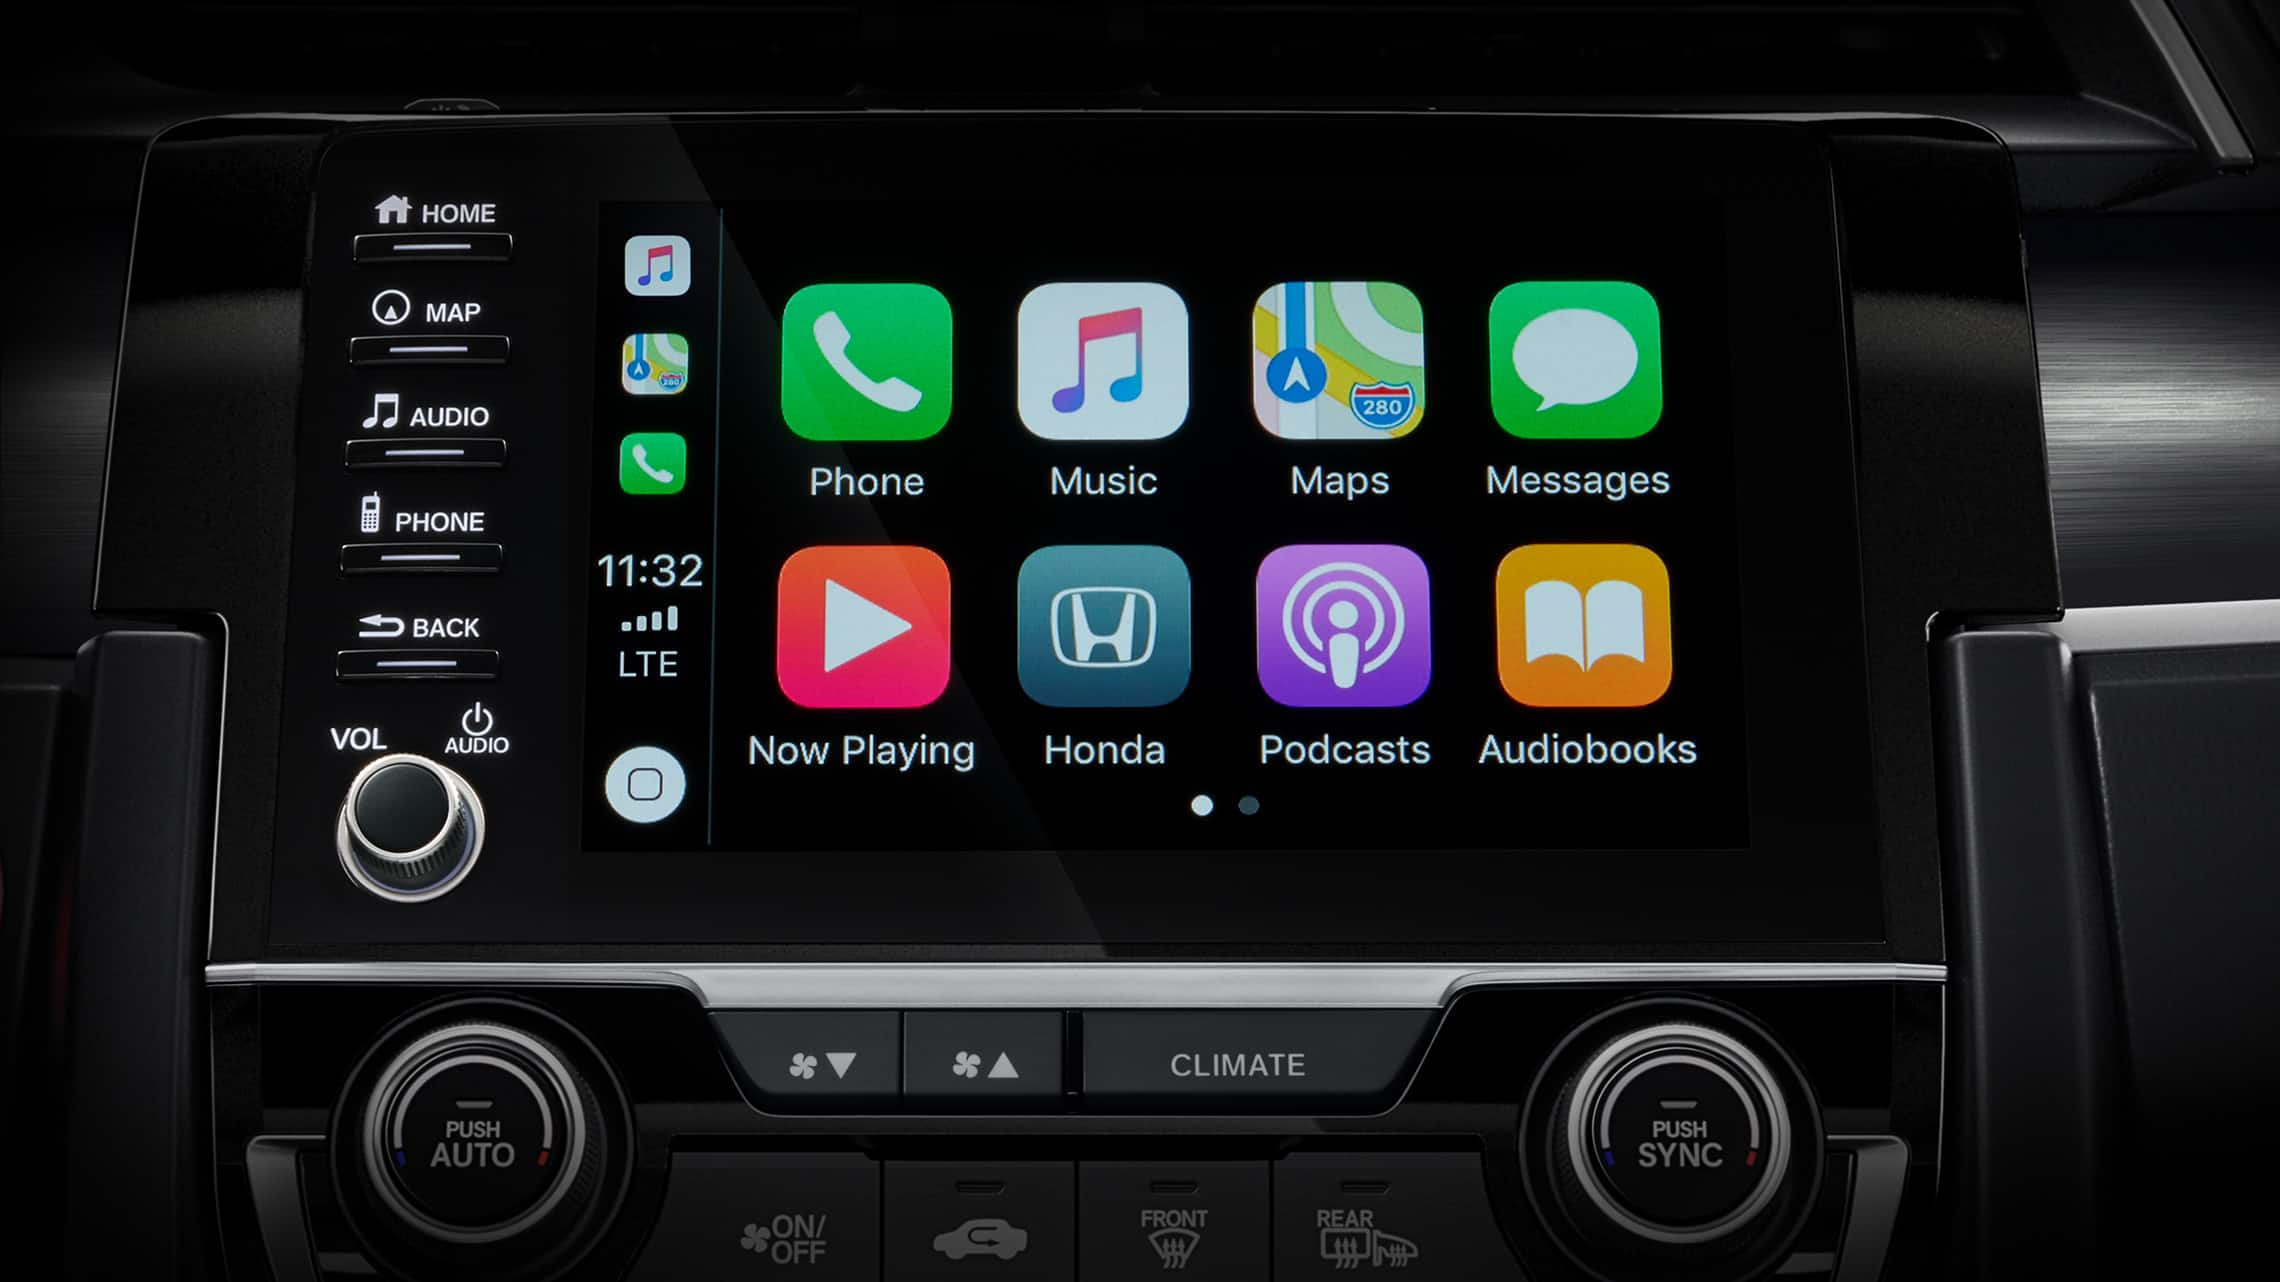 Detalle de pantalla de Apple CarPlay® en la pantalla táctil del sistema de audio del Honda Civic Sport Touring Hatchback 2020.